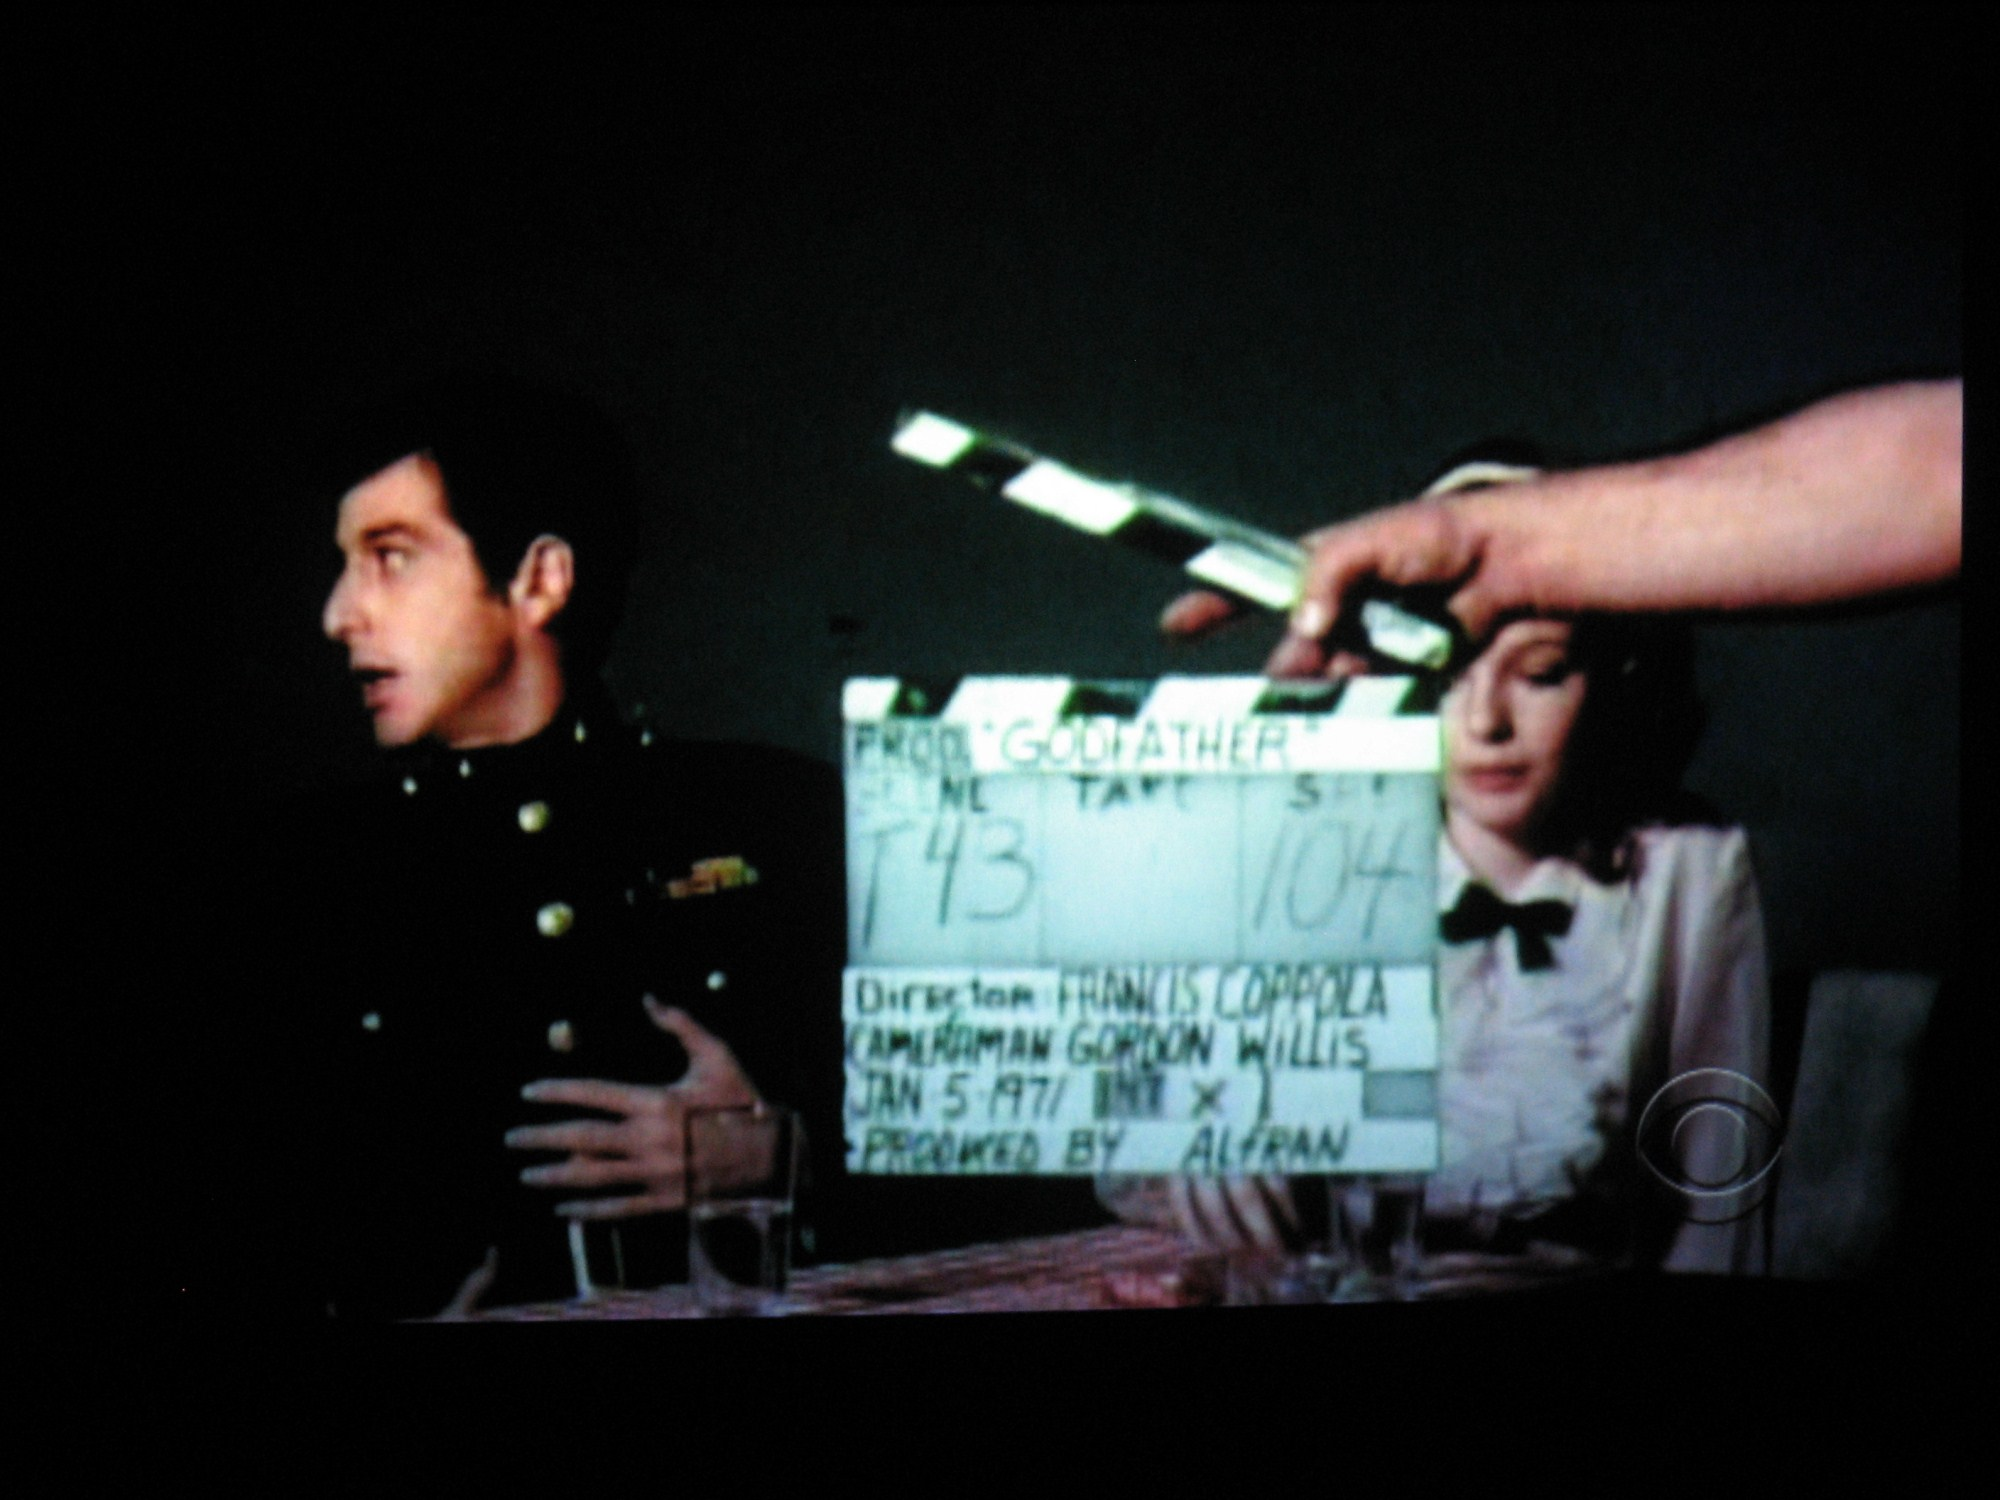 godfather-al-pacino-60-minutes-slate-clapperboard-example-01-x2000